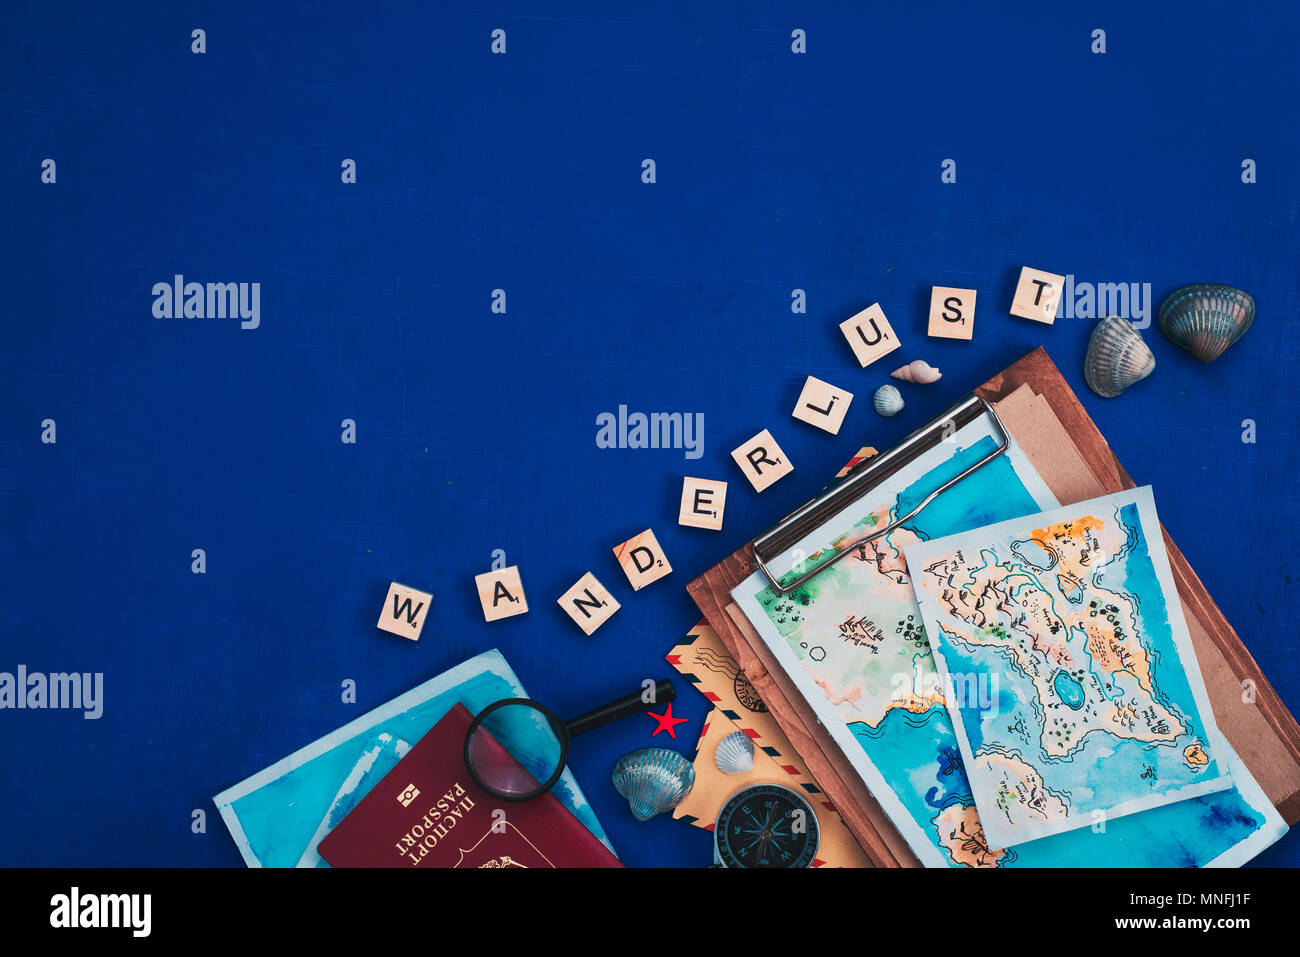 Sea travel and exploration concept. Watercolor maps, passport, compass, binoculars, envelopes, magnifying glass, and Wanderlust wooden letters flat la - Stock Image